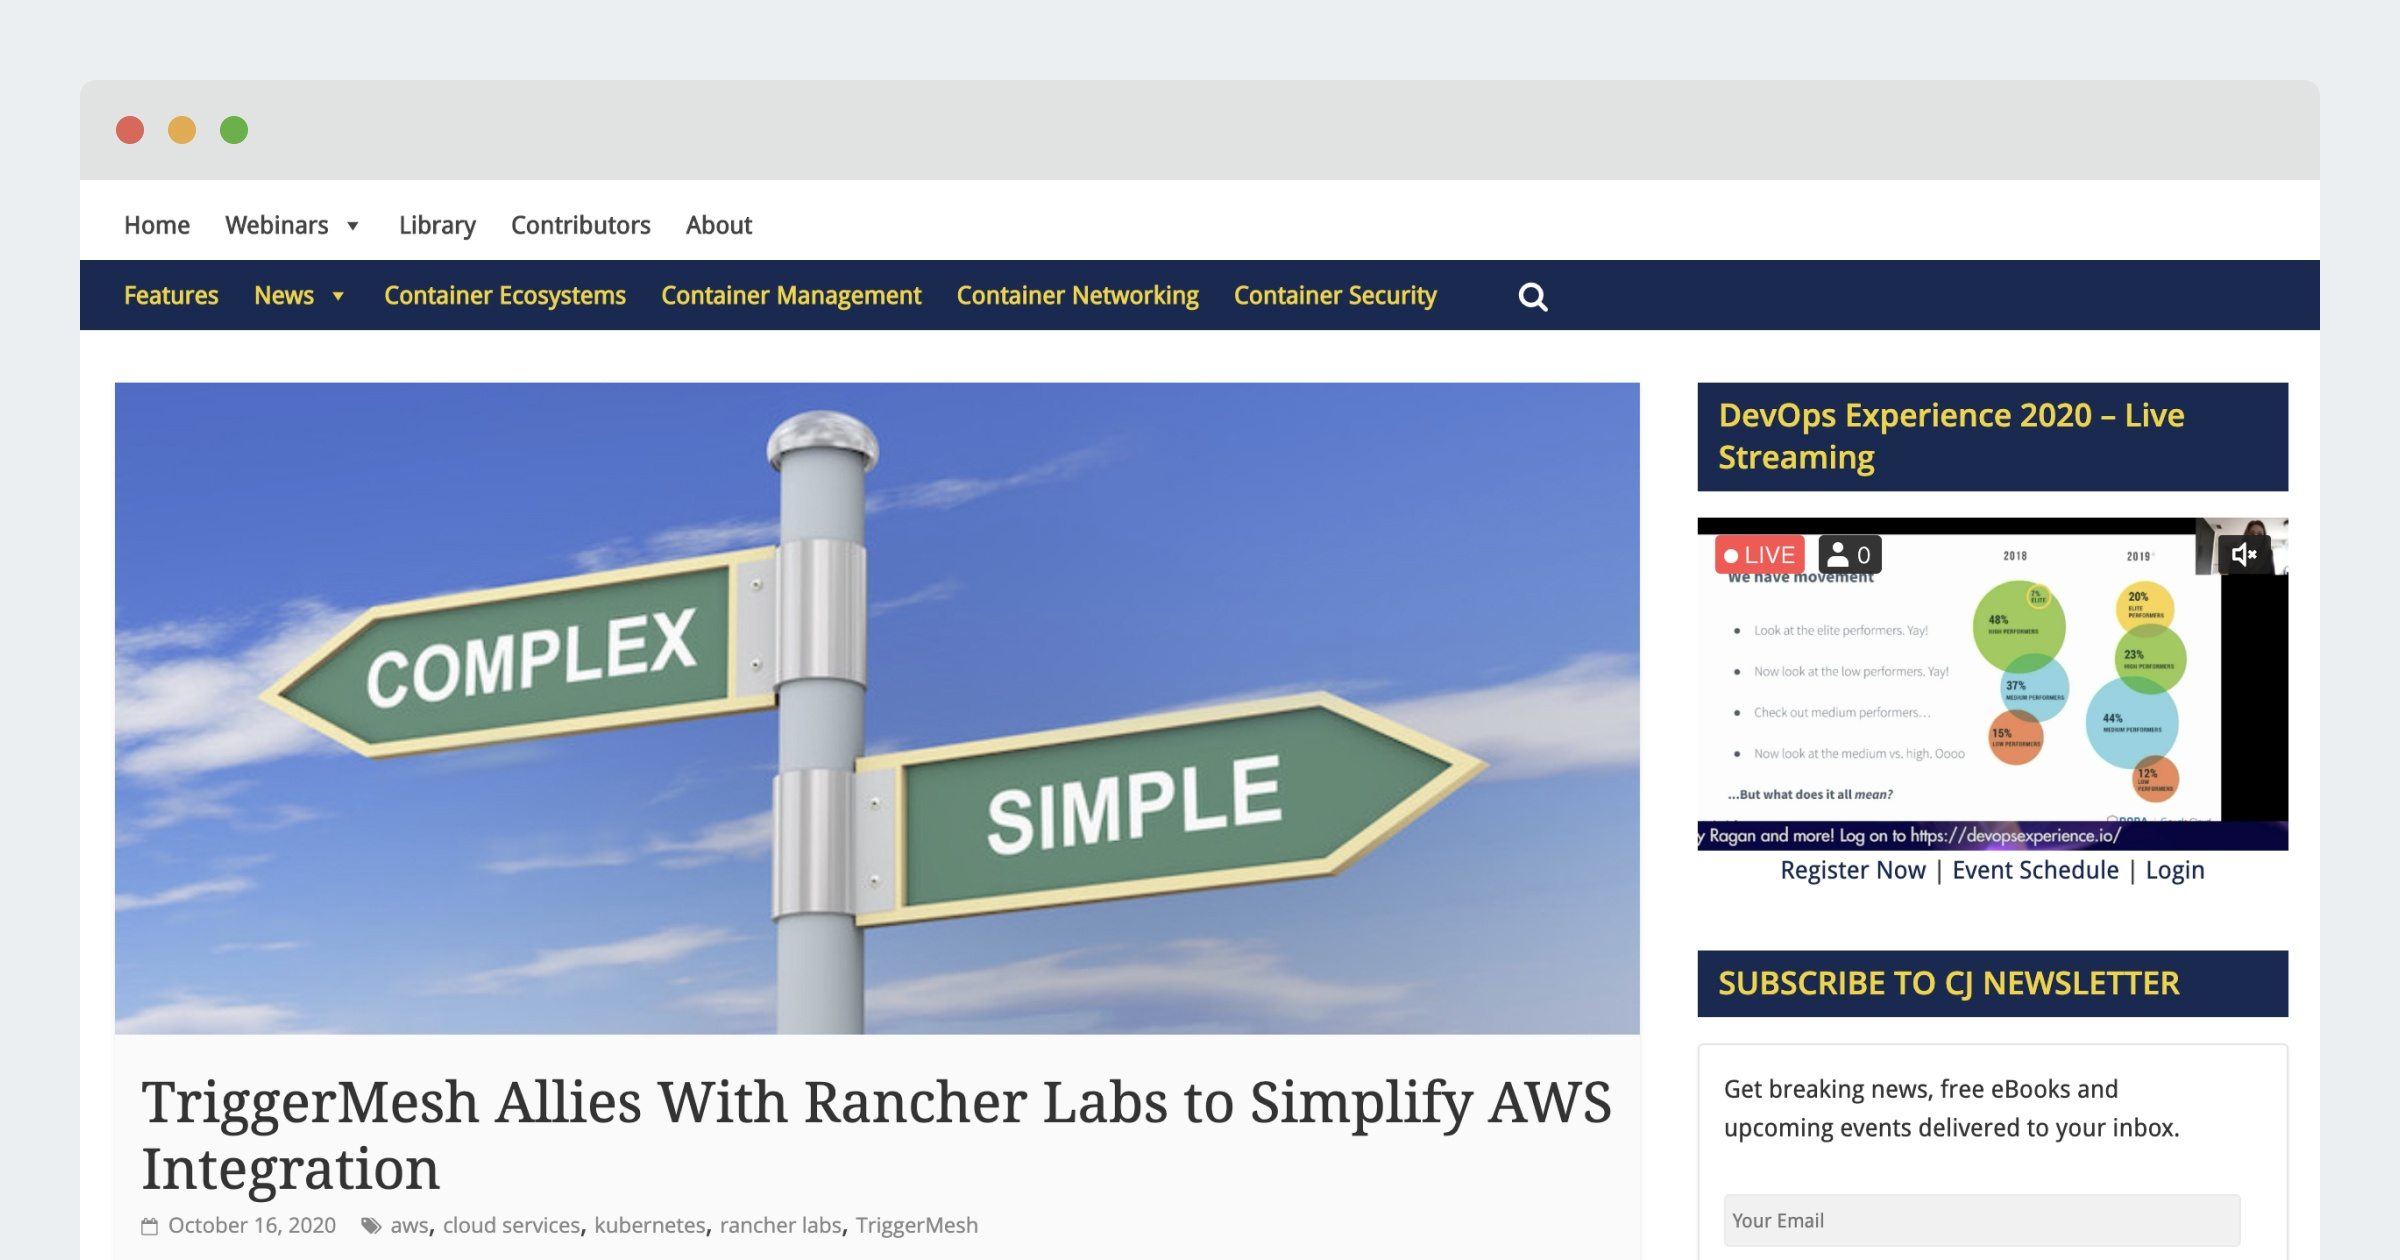 Container Journal – TriggerMesh Allies With Rancher Labs to Simplify AWS Integration